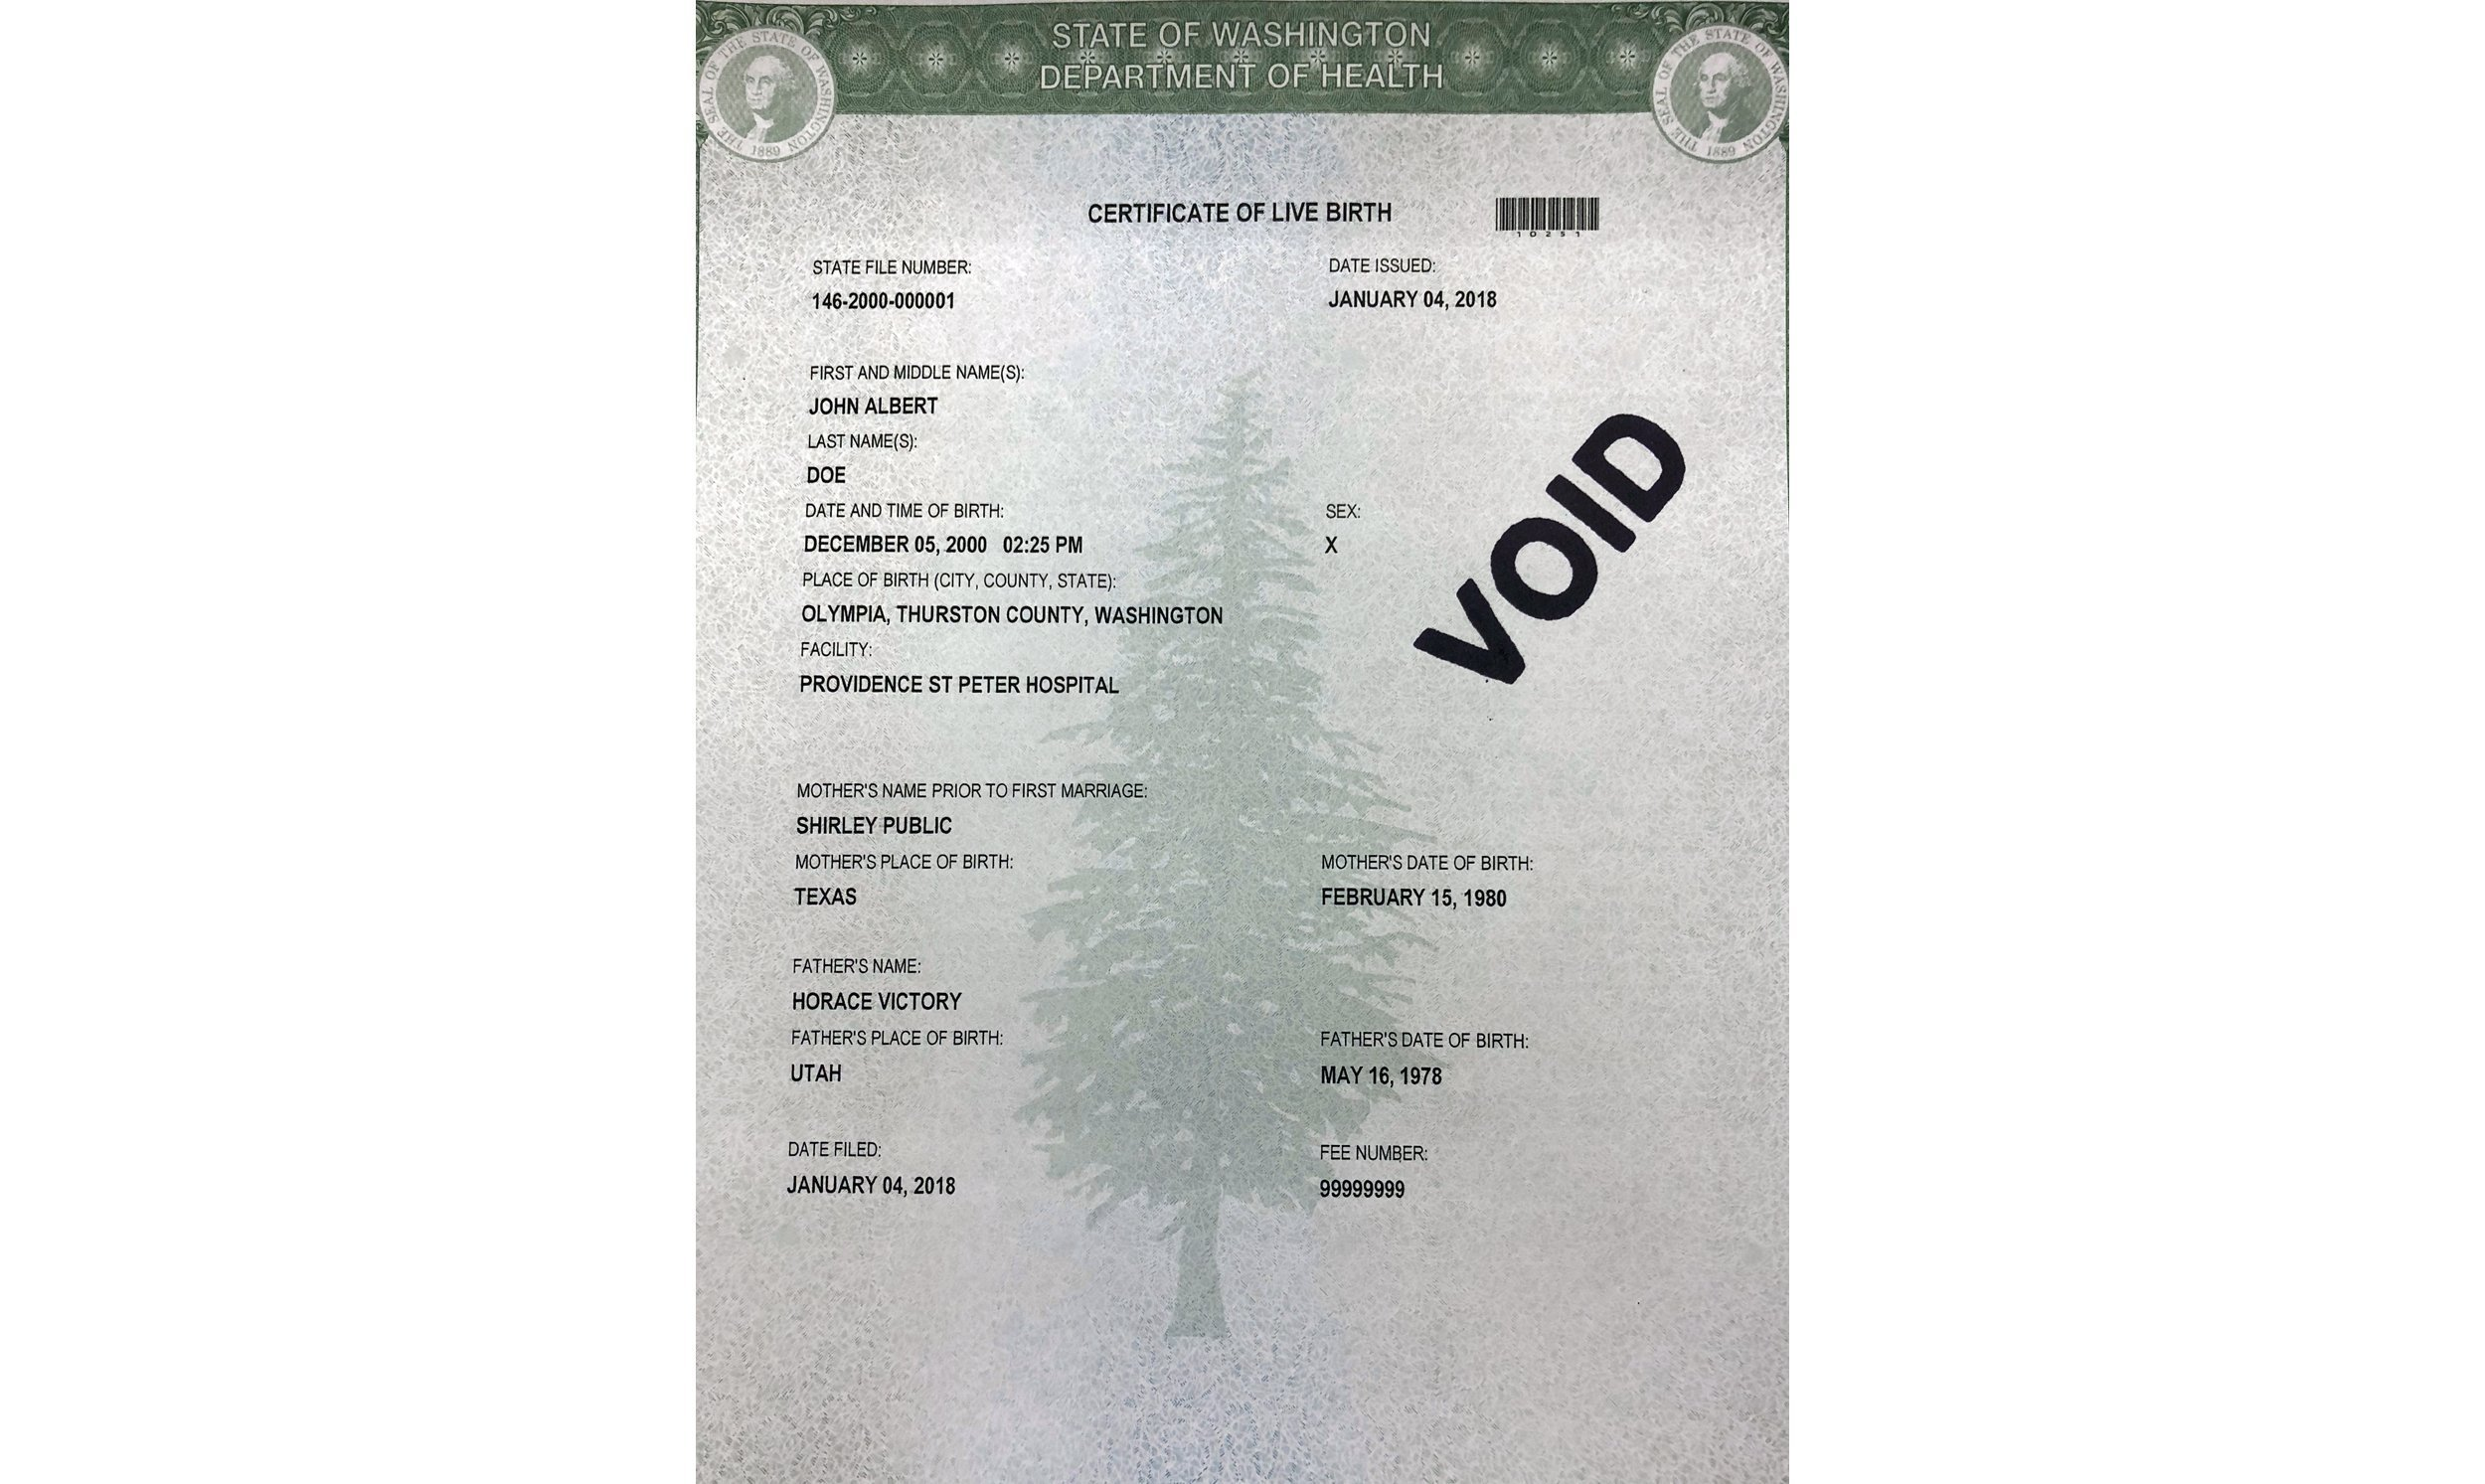 Washington state offers third gender option on birth certificate washington state offers third gender option on birth certificate erie news now wicu wsee in erie pa xflitez Choice Image